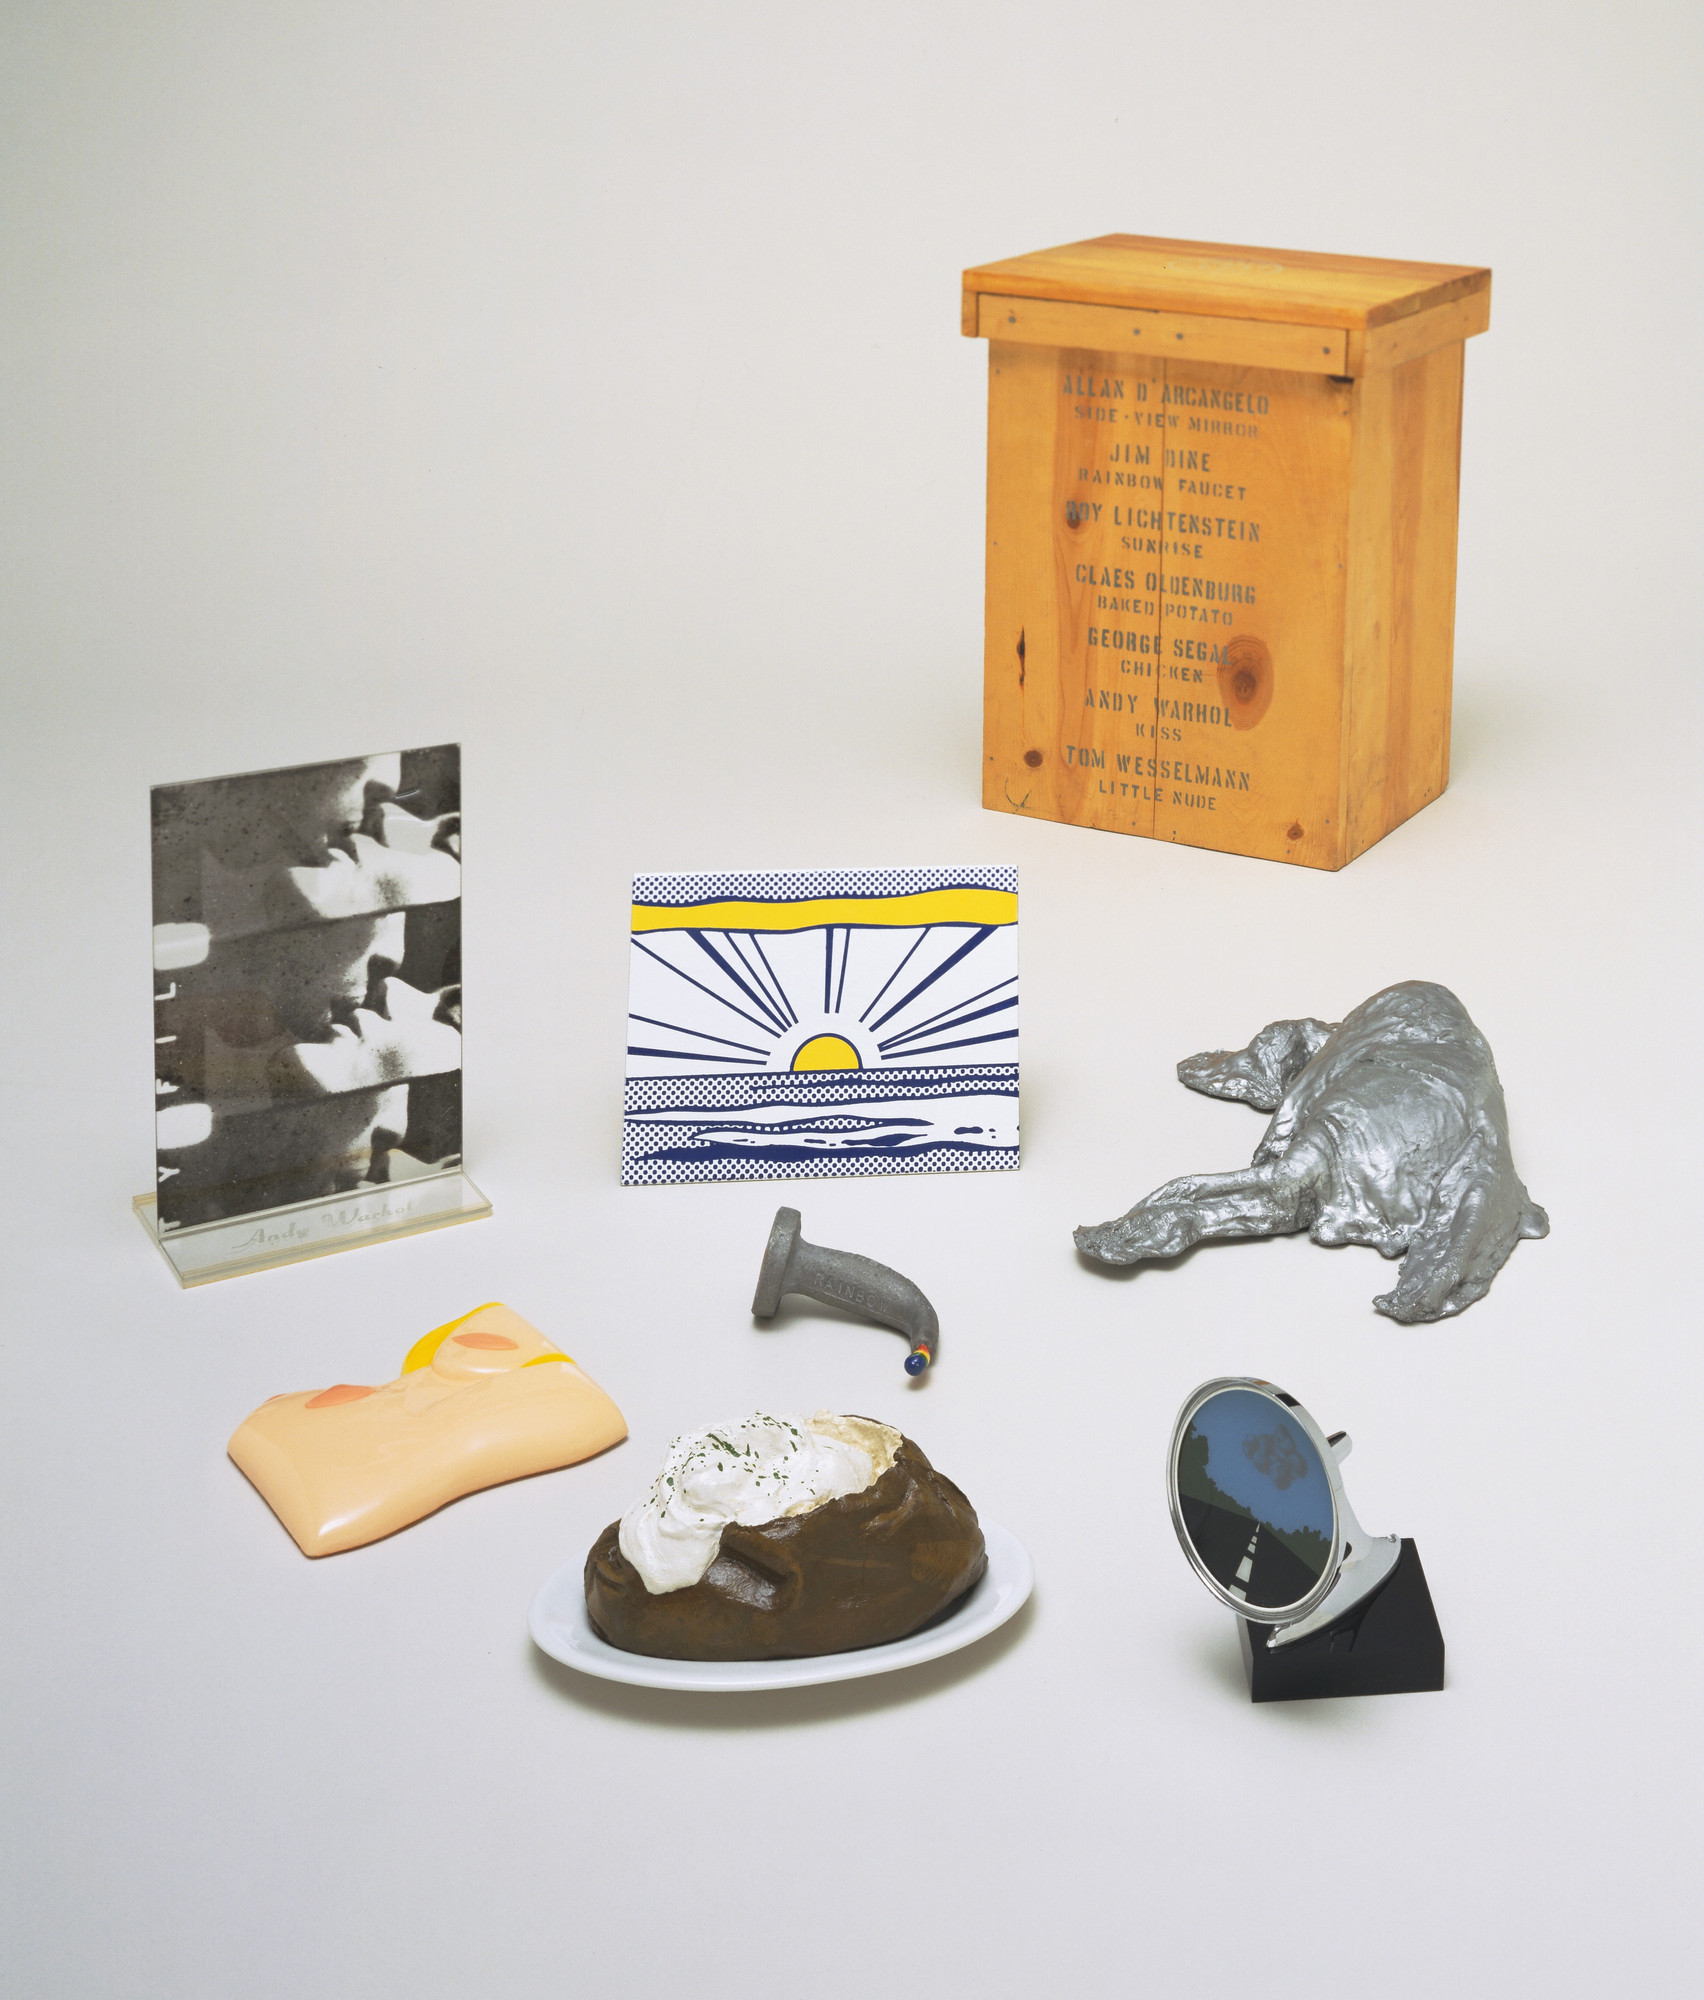 Various Artists, Allan D'Arcangelo, Jim Dine, Roy Lichtenstein, Claes Oldenburg, George Segal, Andy Warhol, Tom Wesselmann. 7 Objects in a Box. 1965–66, published 1966